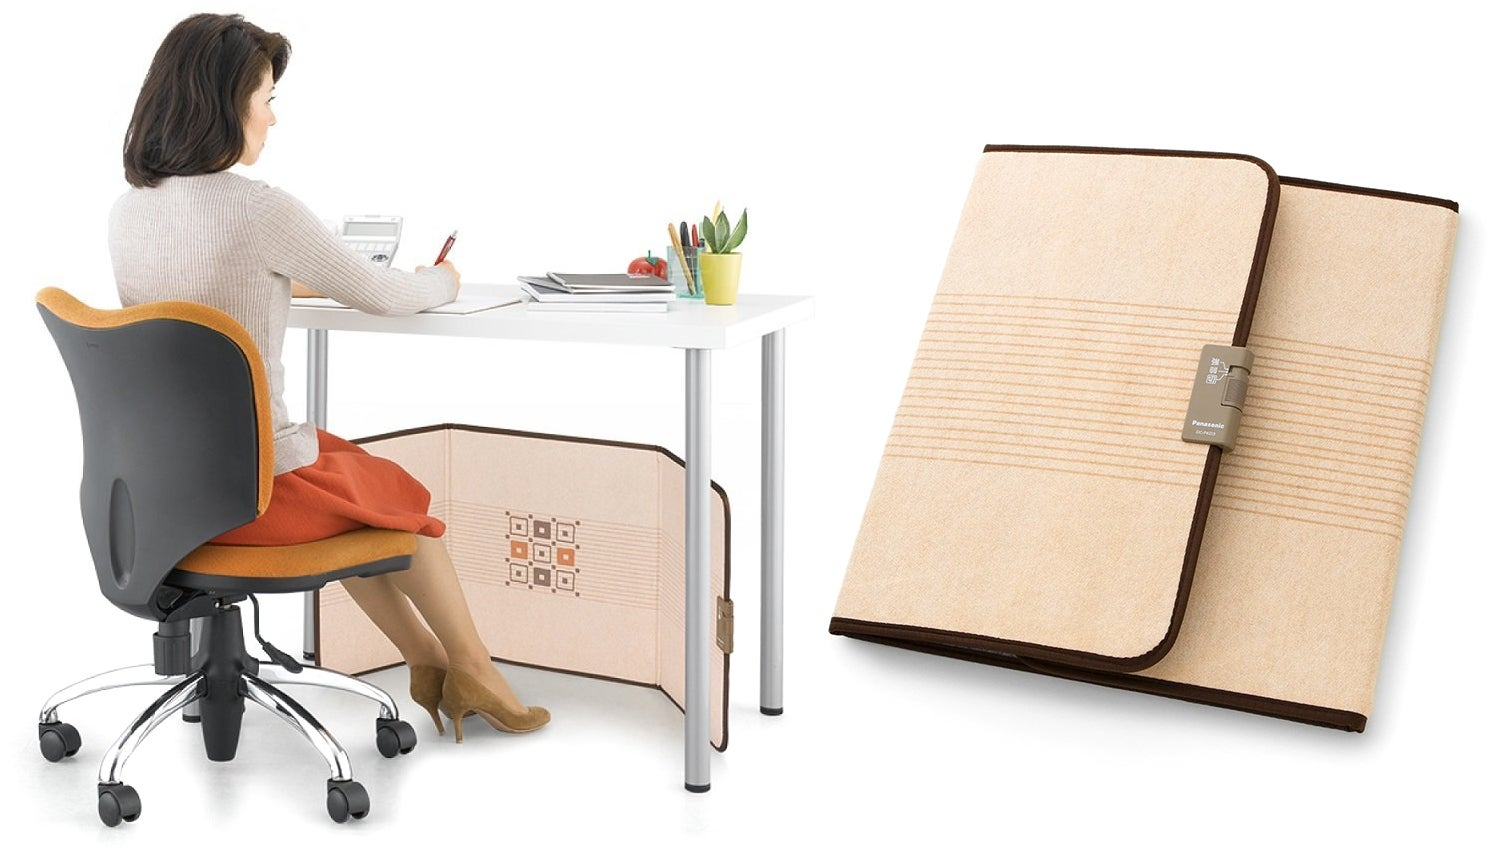 You Can Stash This Folding Under-Desk Heater In A Filing Cabinet Until You Get Cold